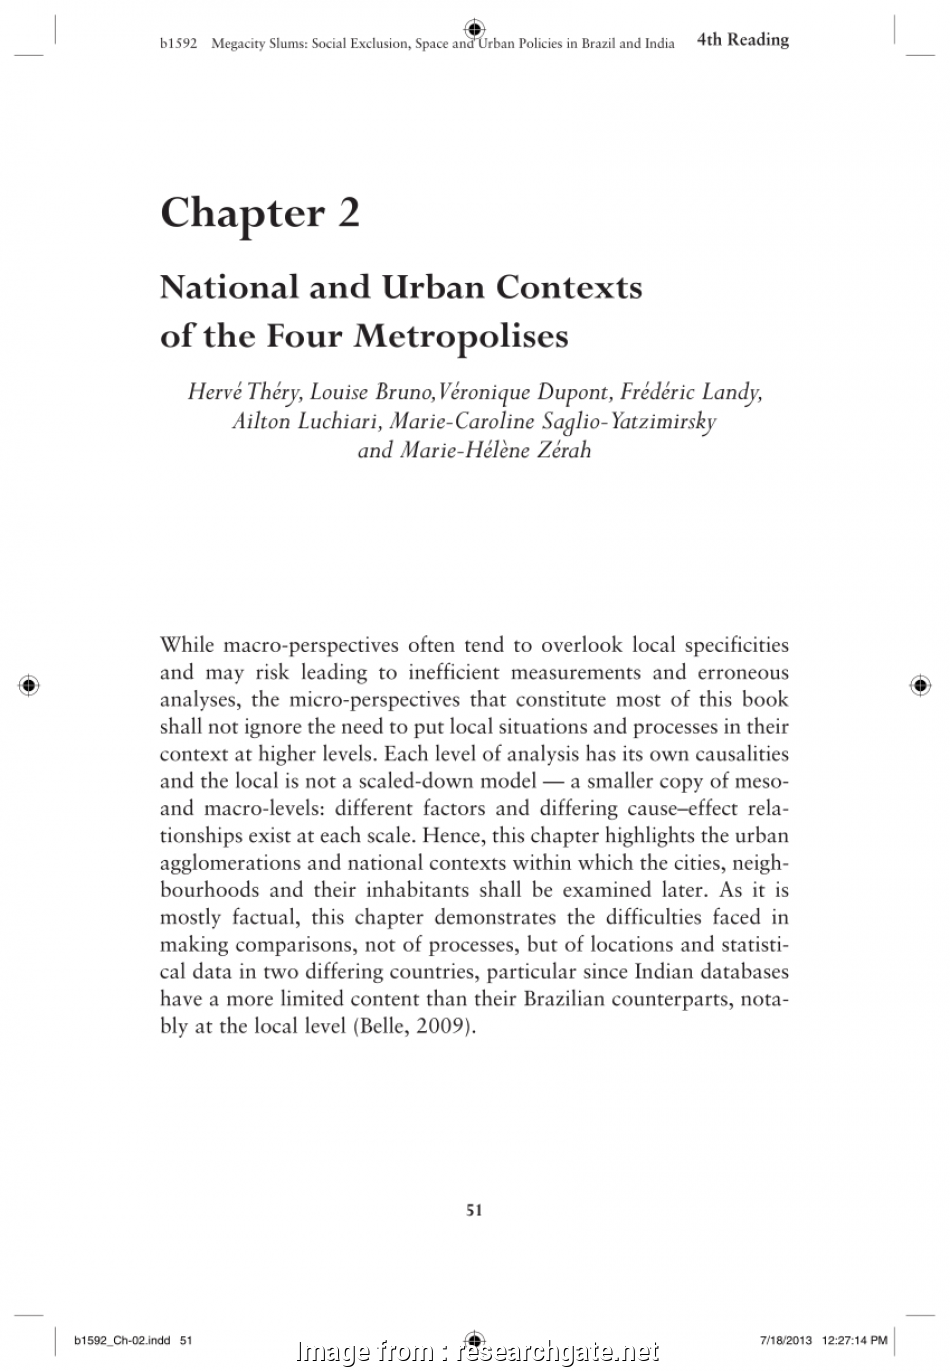 electrical wiring residential 18th edition chapter 27 answers (PDF) National, Urban Contexts of, Four Metropolises 8 Most Electrical Wiring Residential 18Th Edition Chapter 27 Answers Galleries